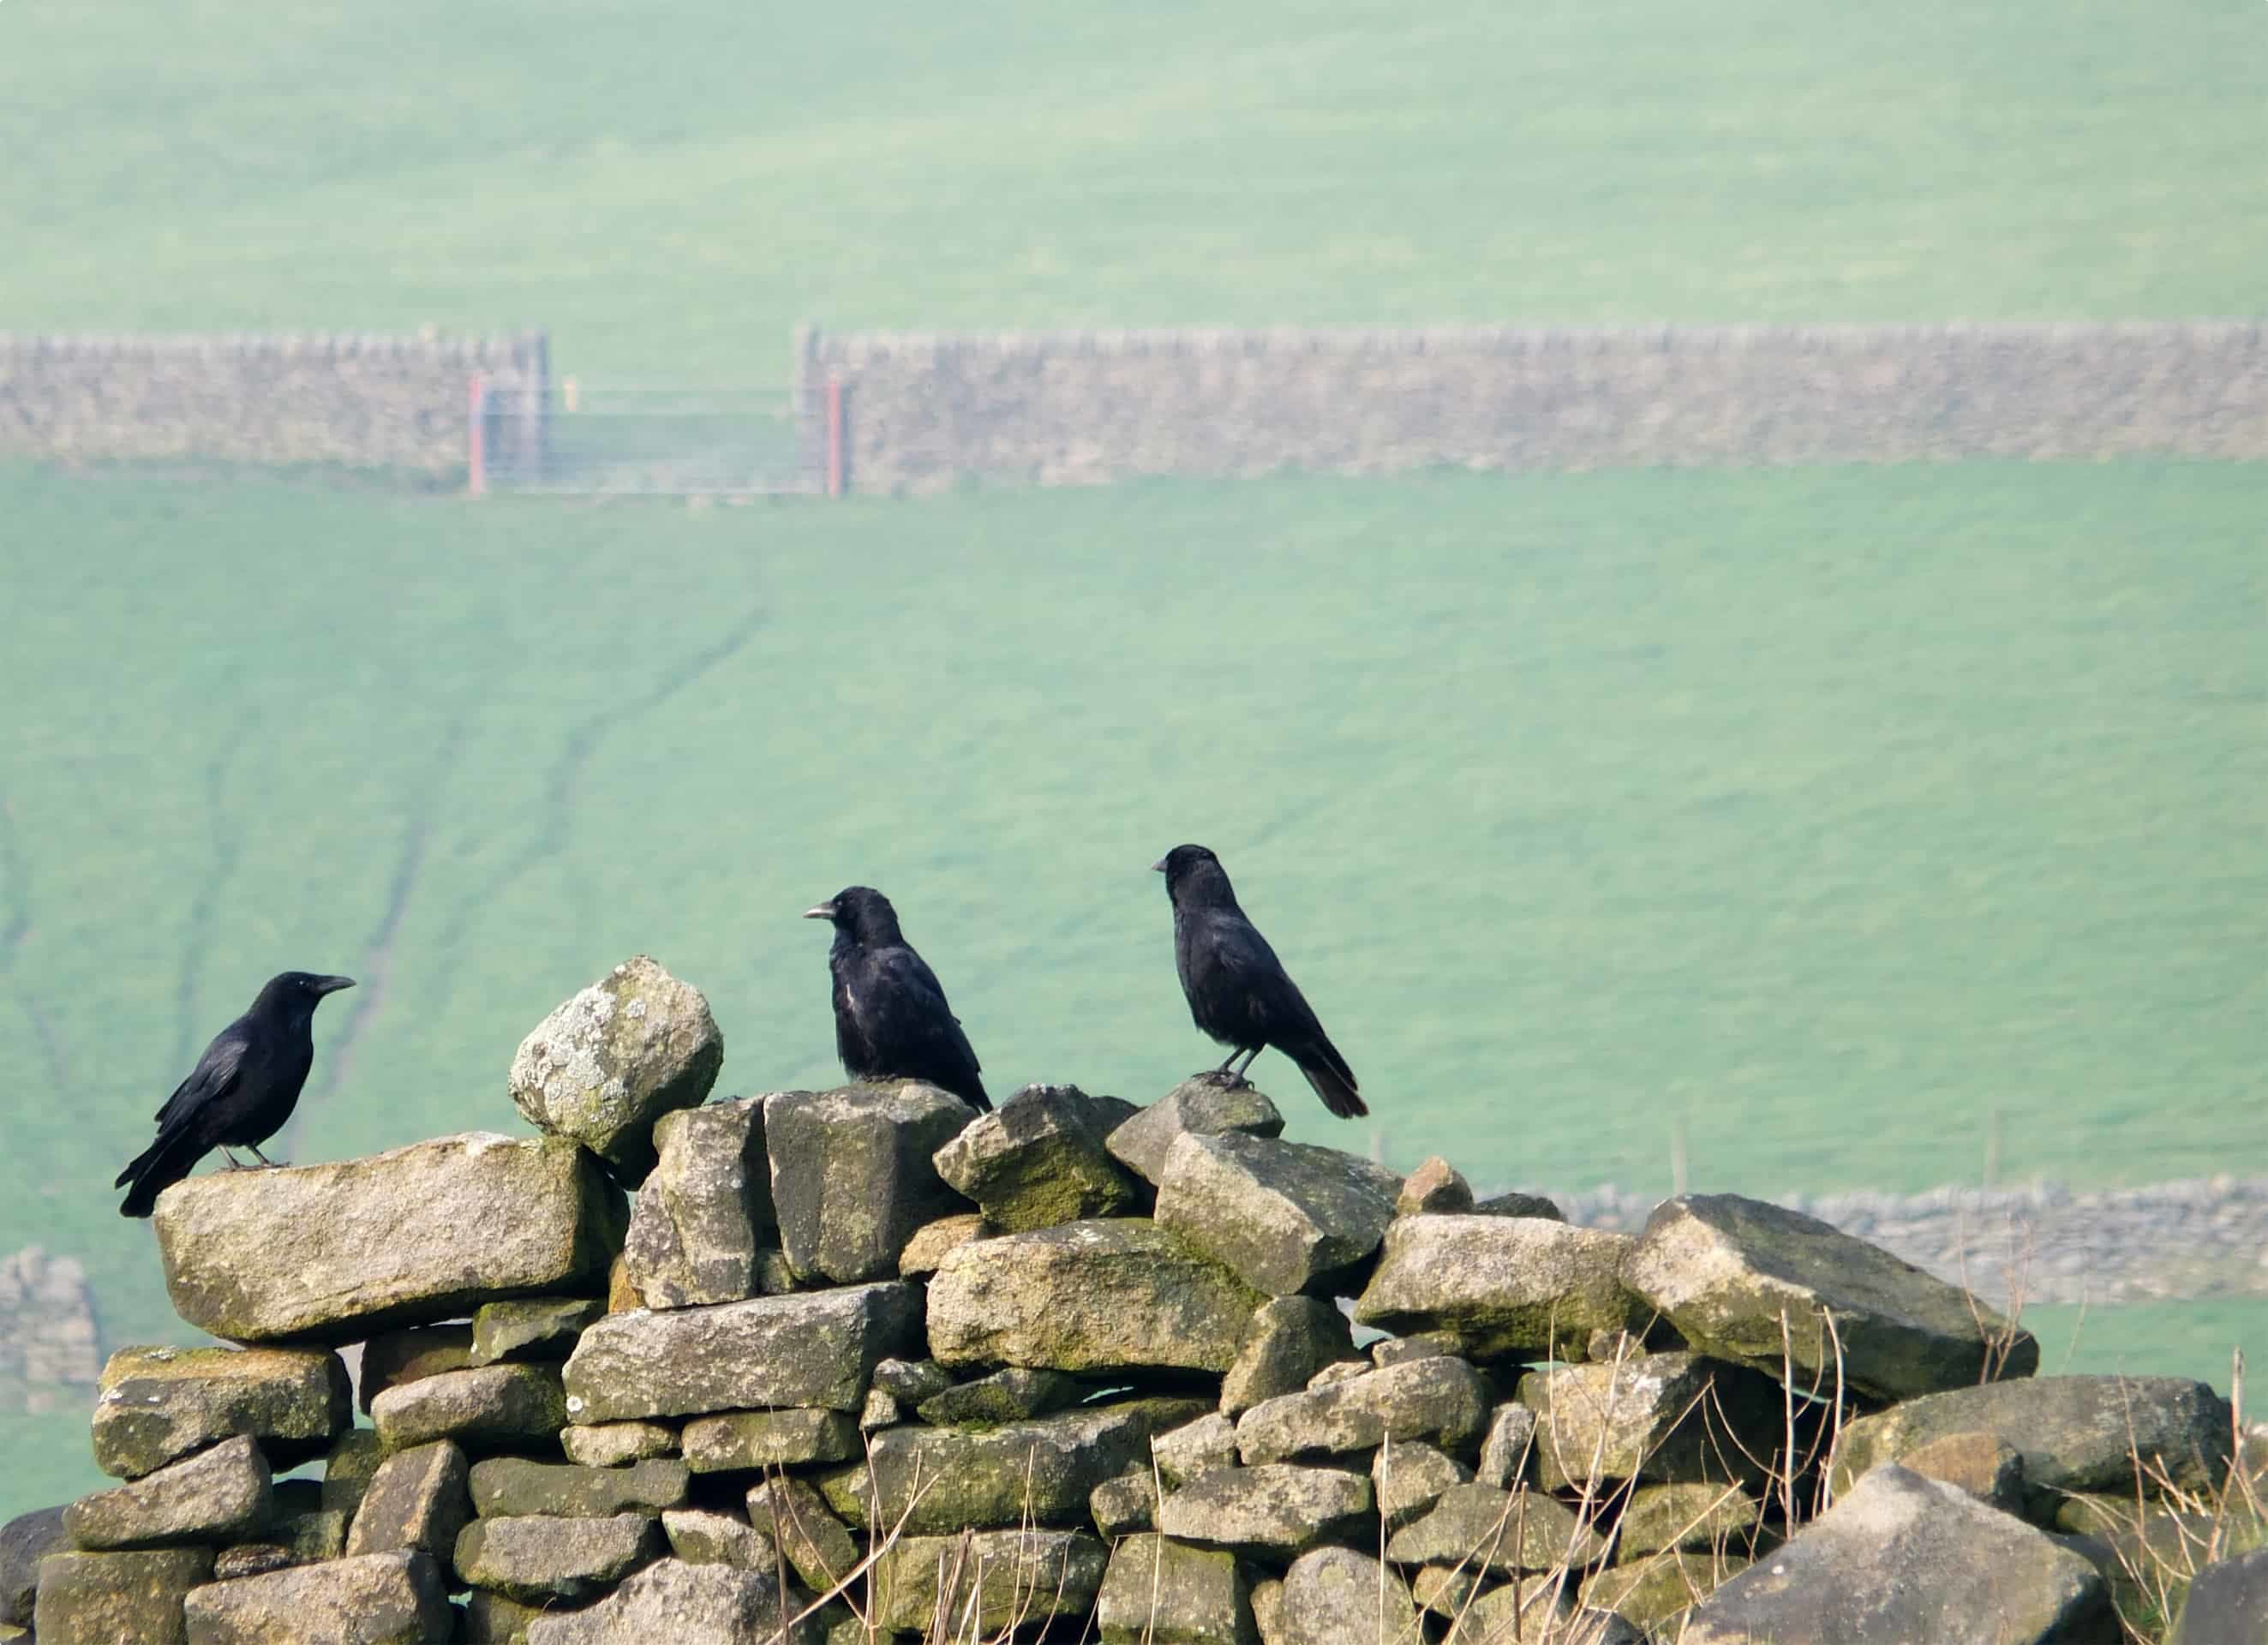 Local Birds on a Dry Stone Wall, Yorkshire Dales